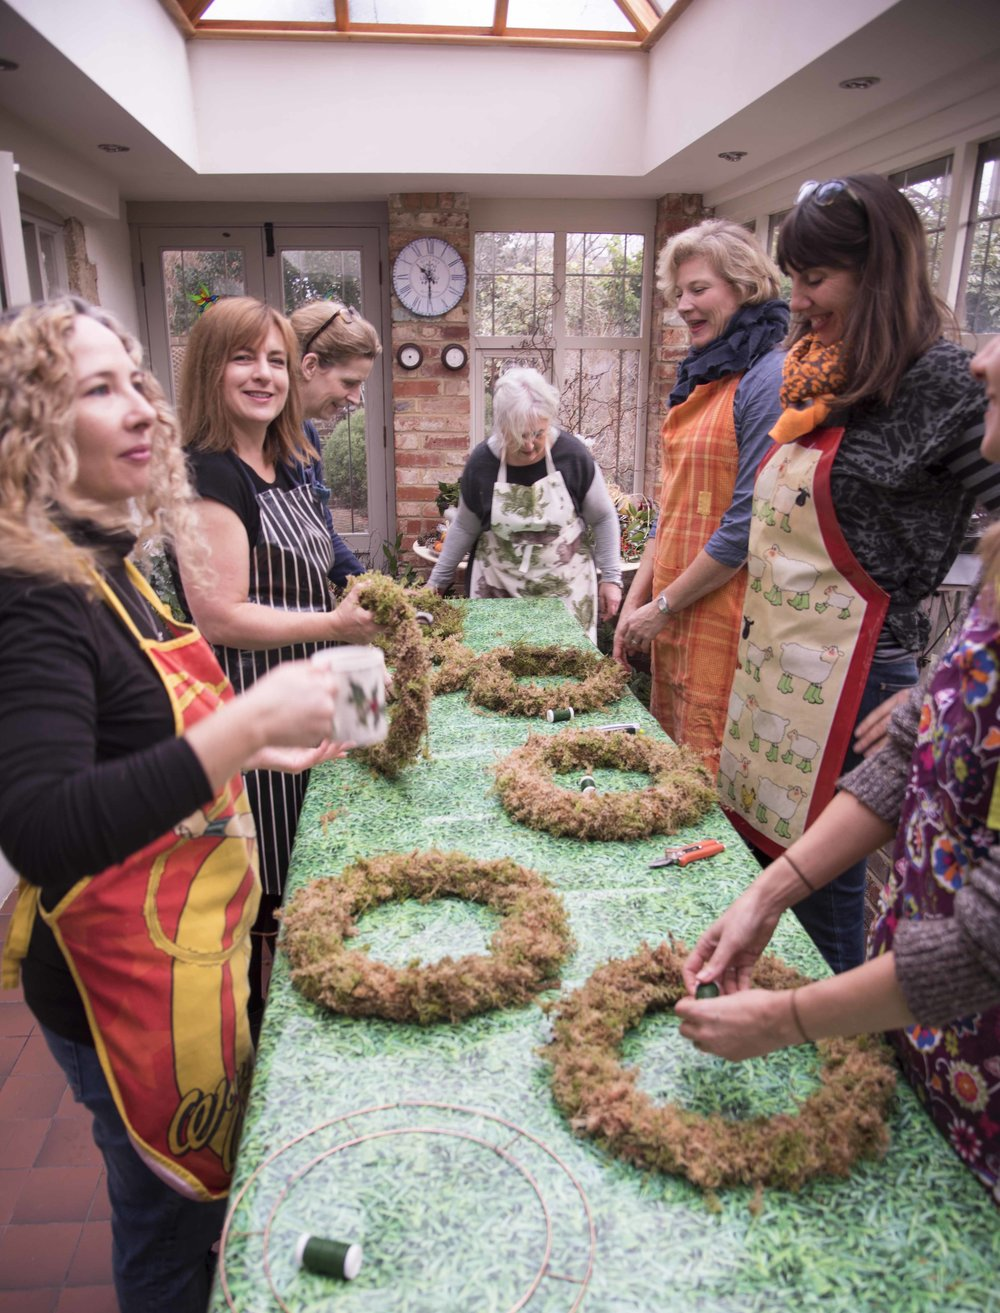 Wreath making workshop run by Darling Buds of Sussex